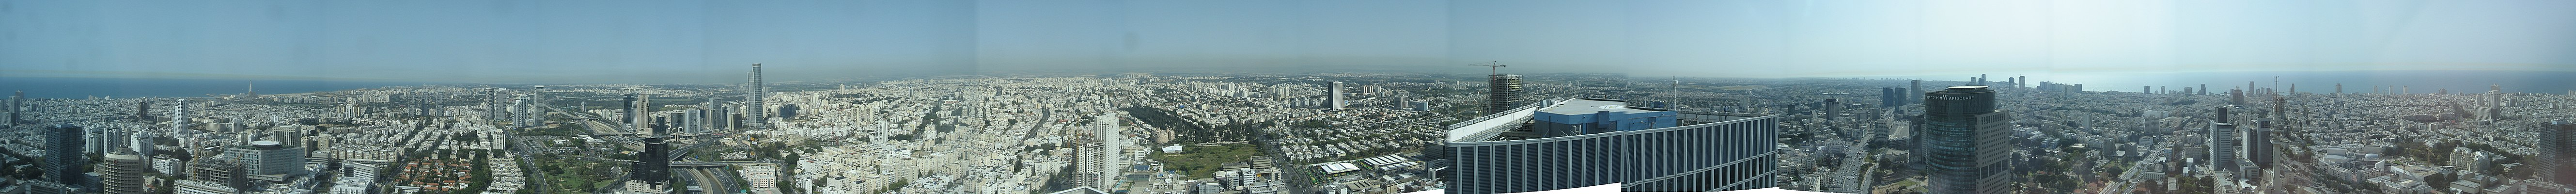 Panoramic View of Tel Aviv from the observation deck of the circle Azrieli Tower.